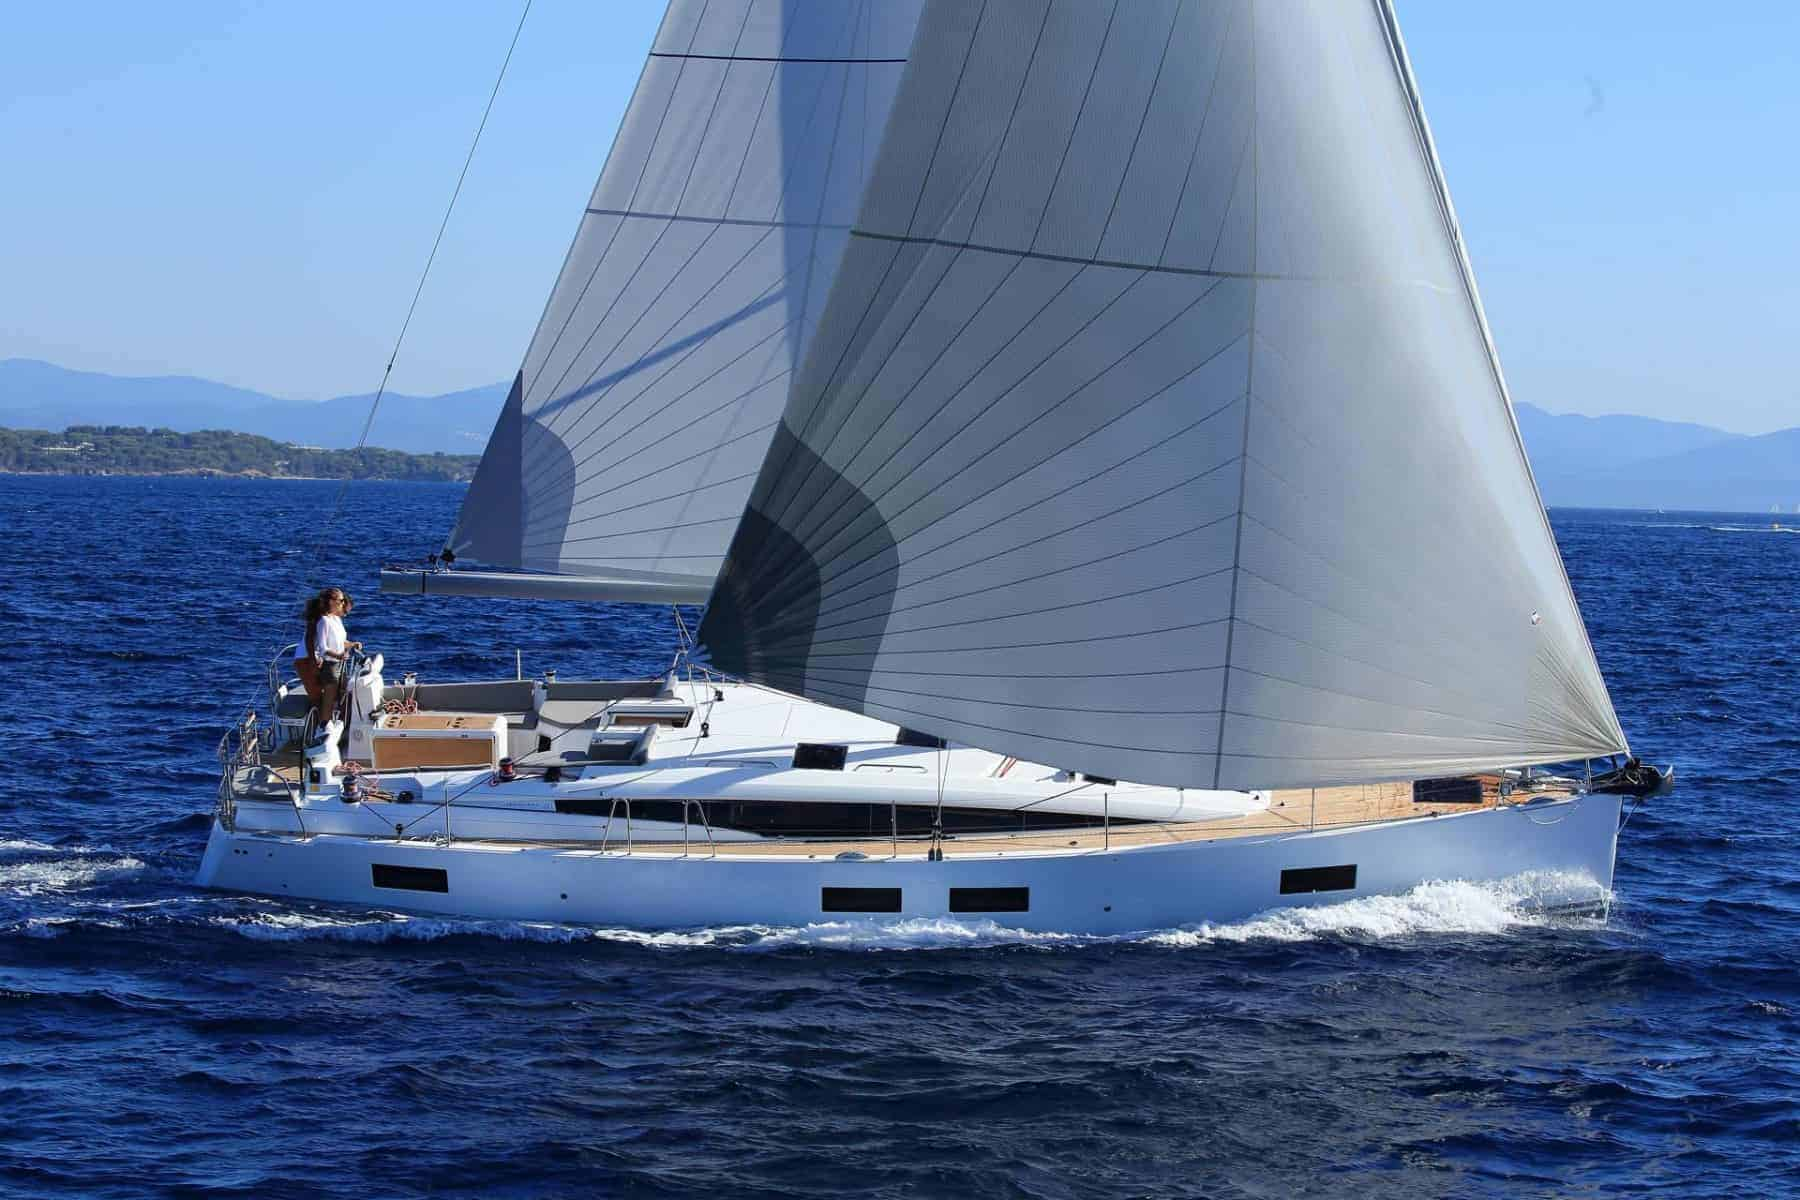 Jeanneau-51-exterior-13-charter-ownership-yacht